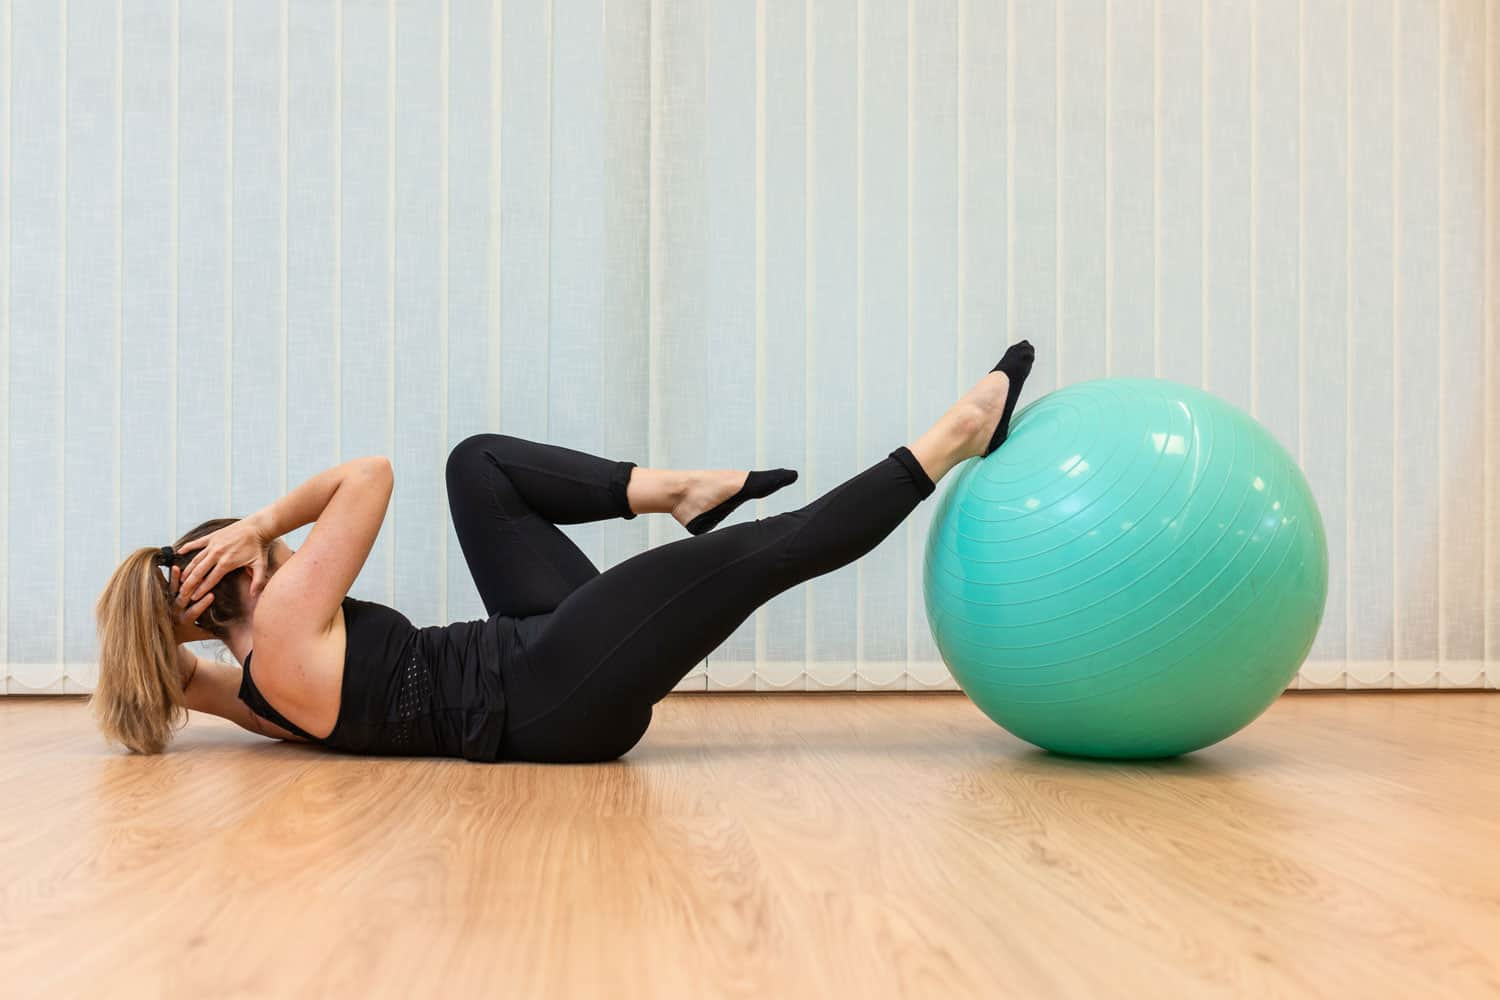 A woman doing criss cross on her fitball inside her living room